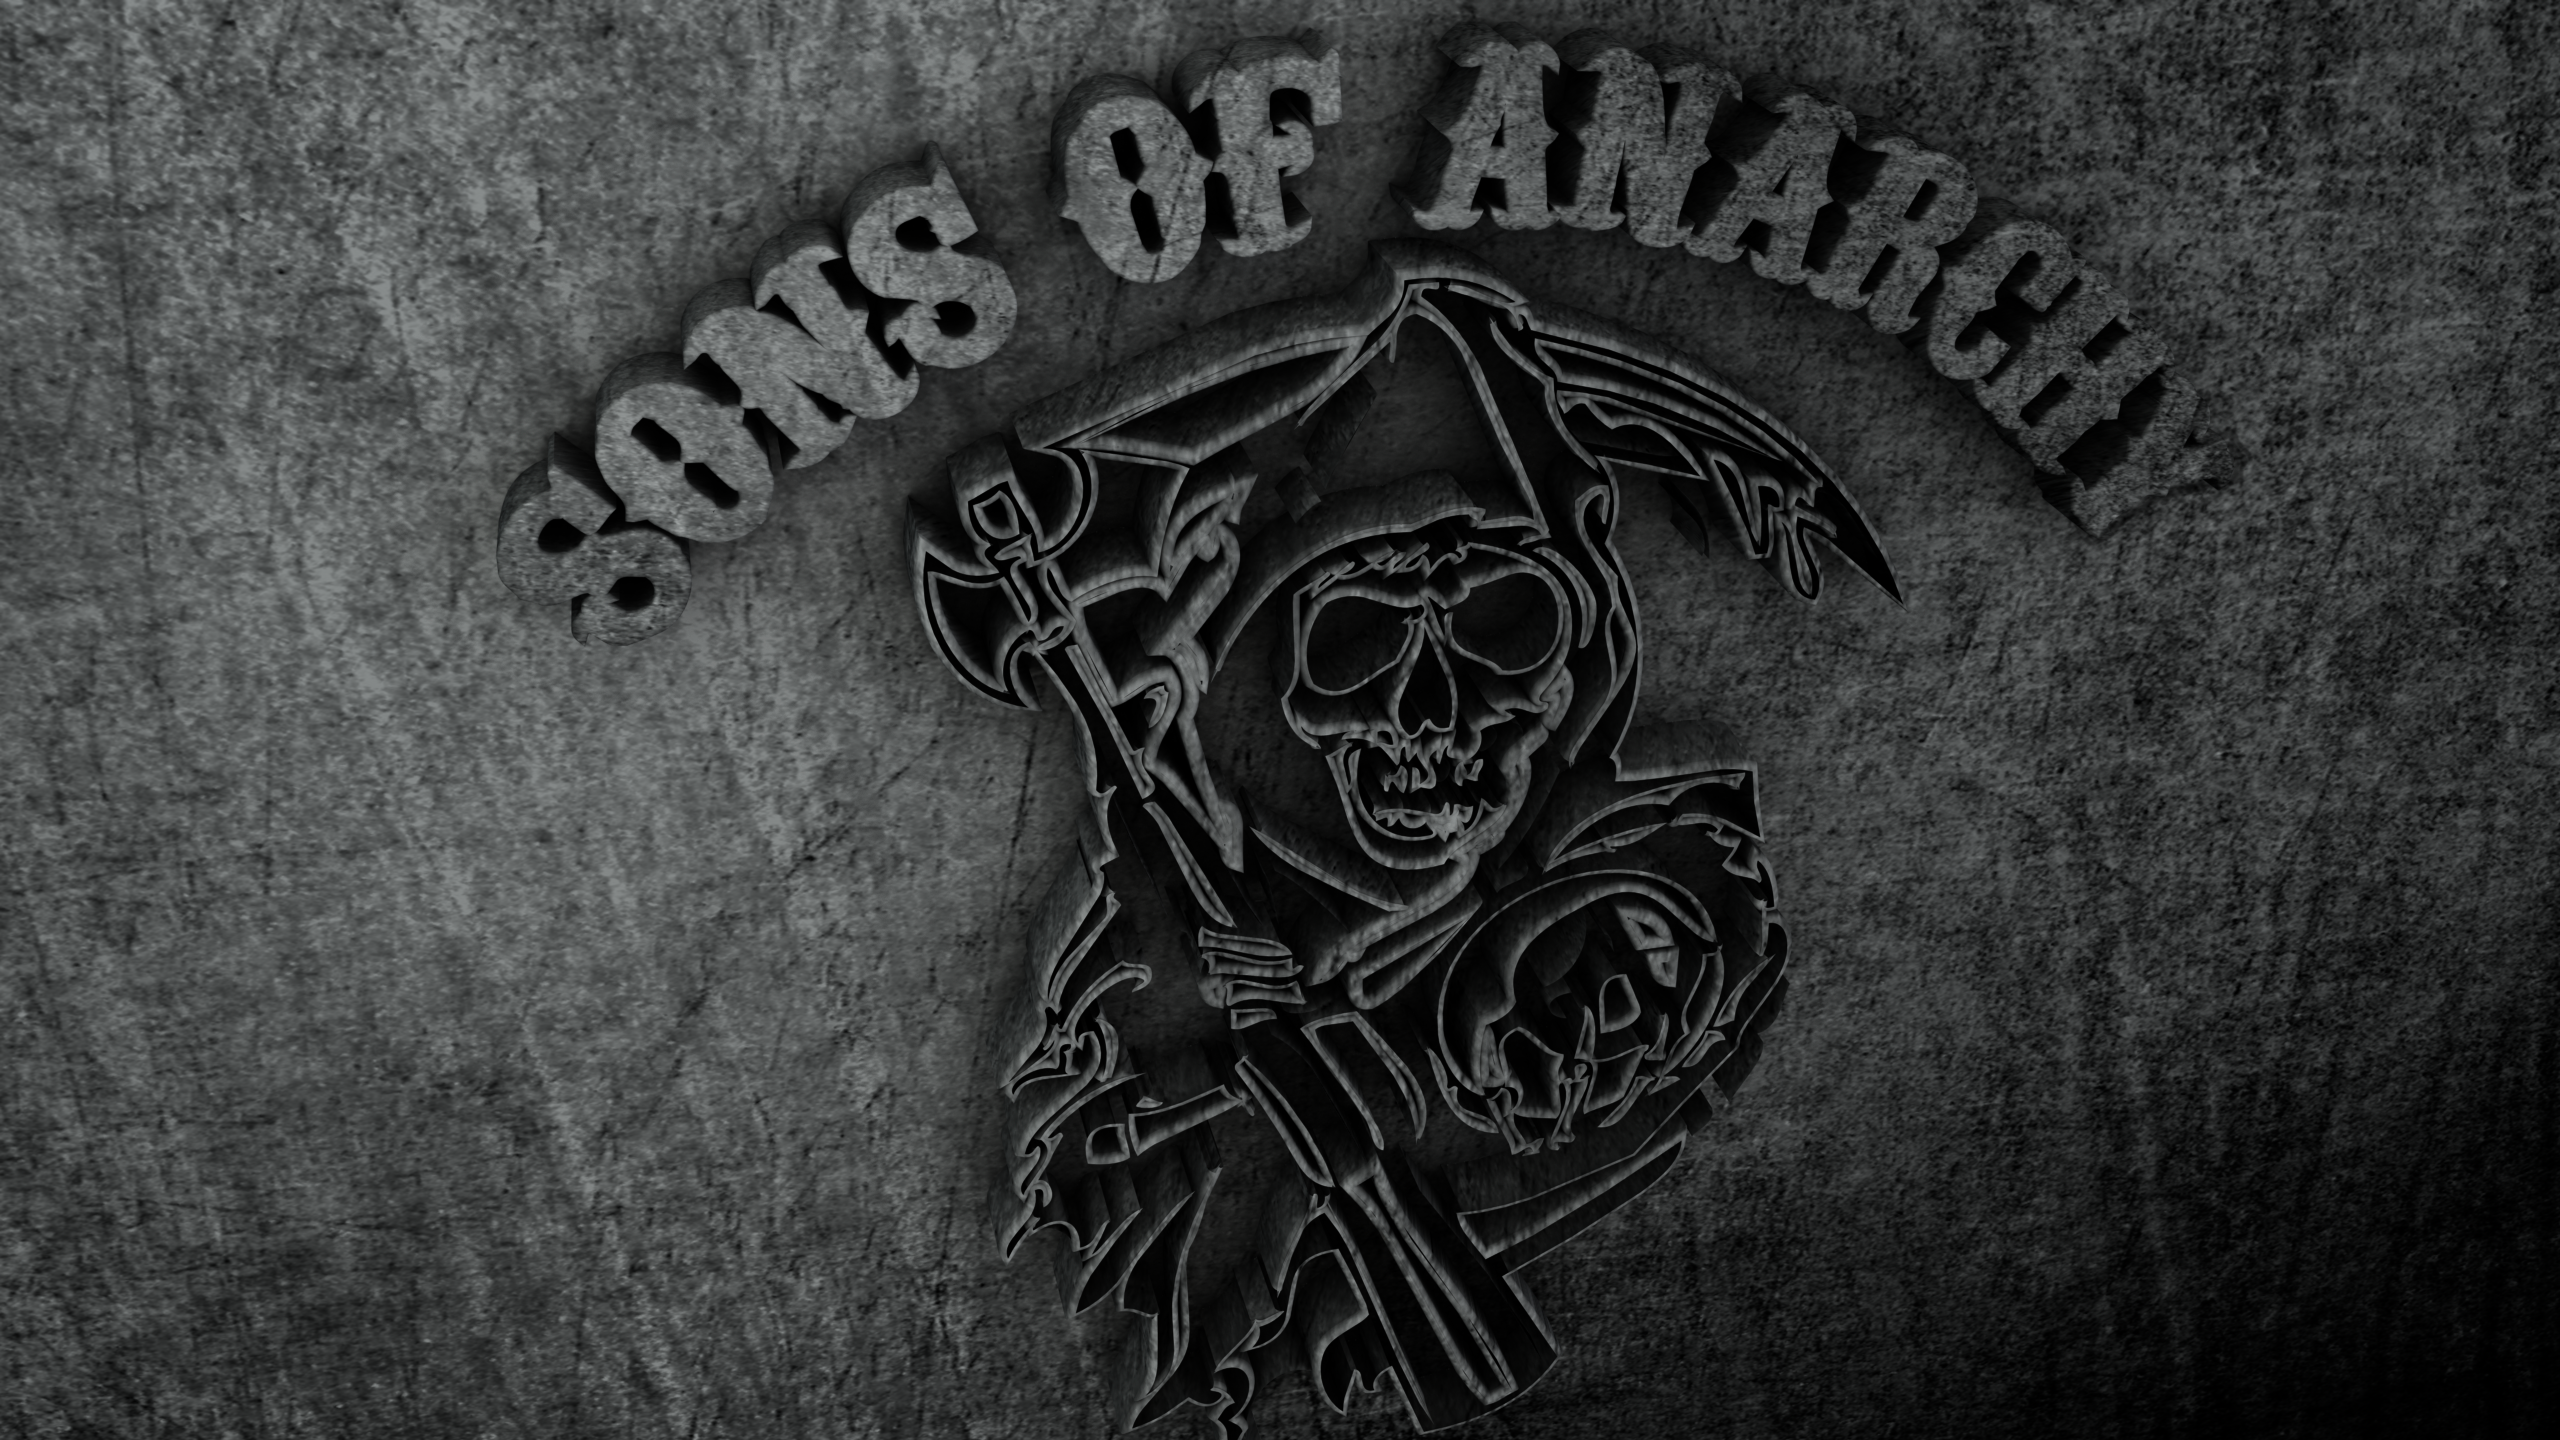 Sons of anarchy full hd wallpaper and background image 2560x1440 tv show sons of anarchy sons of anarchy wallpaper voltagebd Images